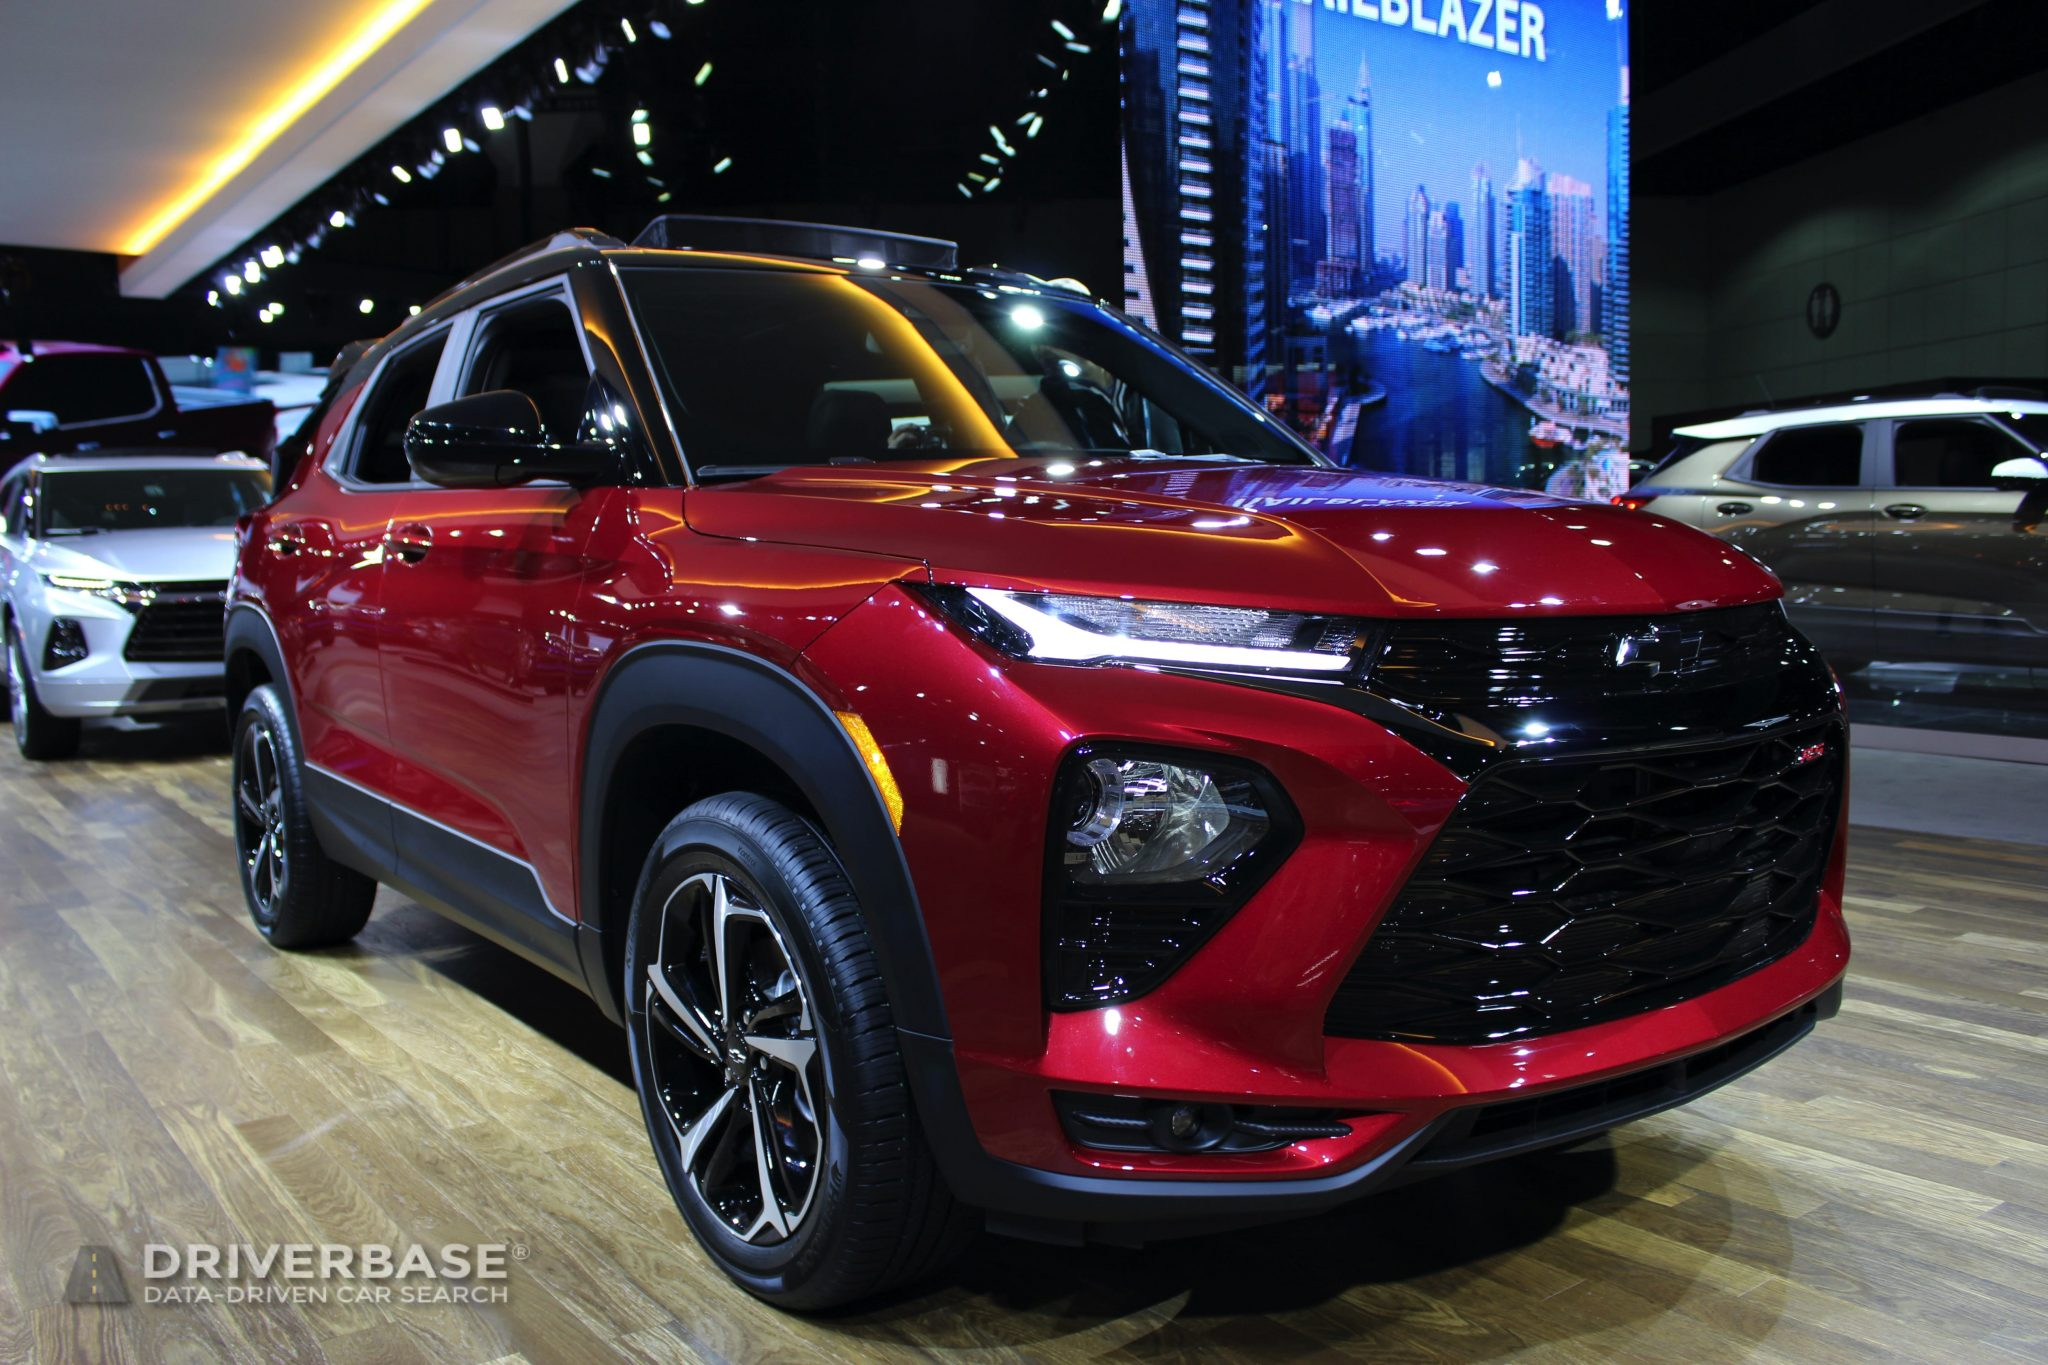 2020 Chevrolet Blazer RS at the 2019 Los Angeles Auto Show